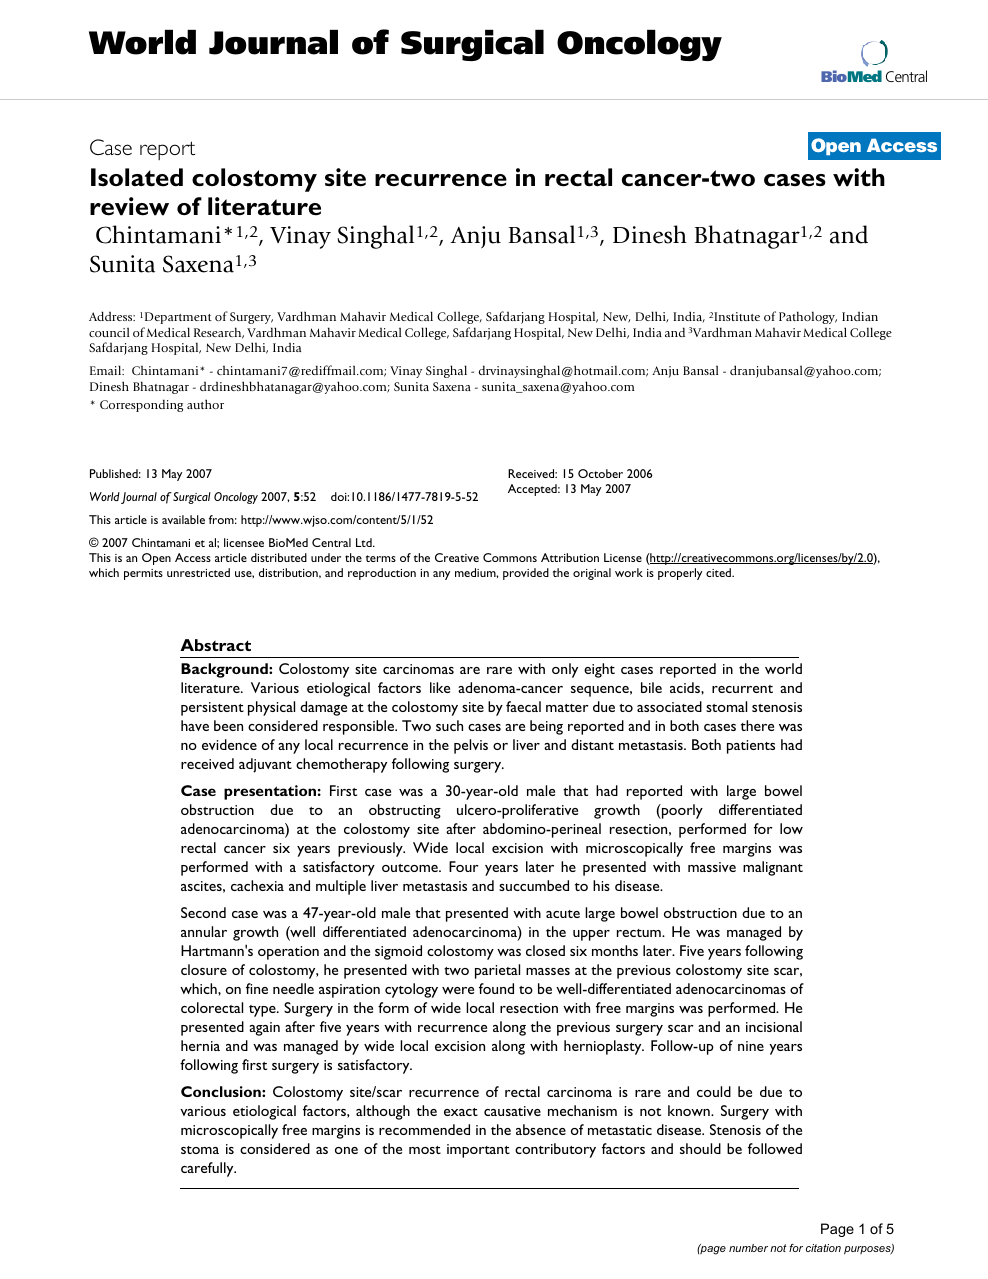 Isolated Colostomy Site Recurrence In Rectal Cancer Two Cases With Review Of Literature Topic Of Research Paper In Clinical Medicine Download Scholarly Article Pdf And Read For Free On Cyberleninka Open Science